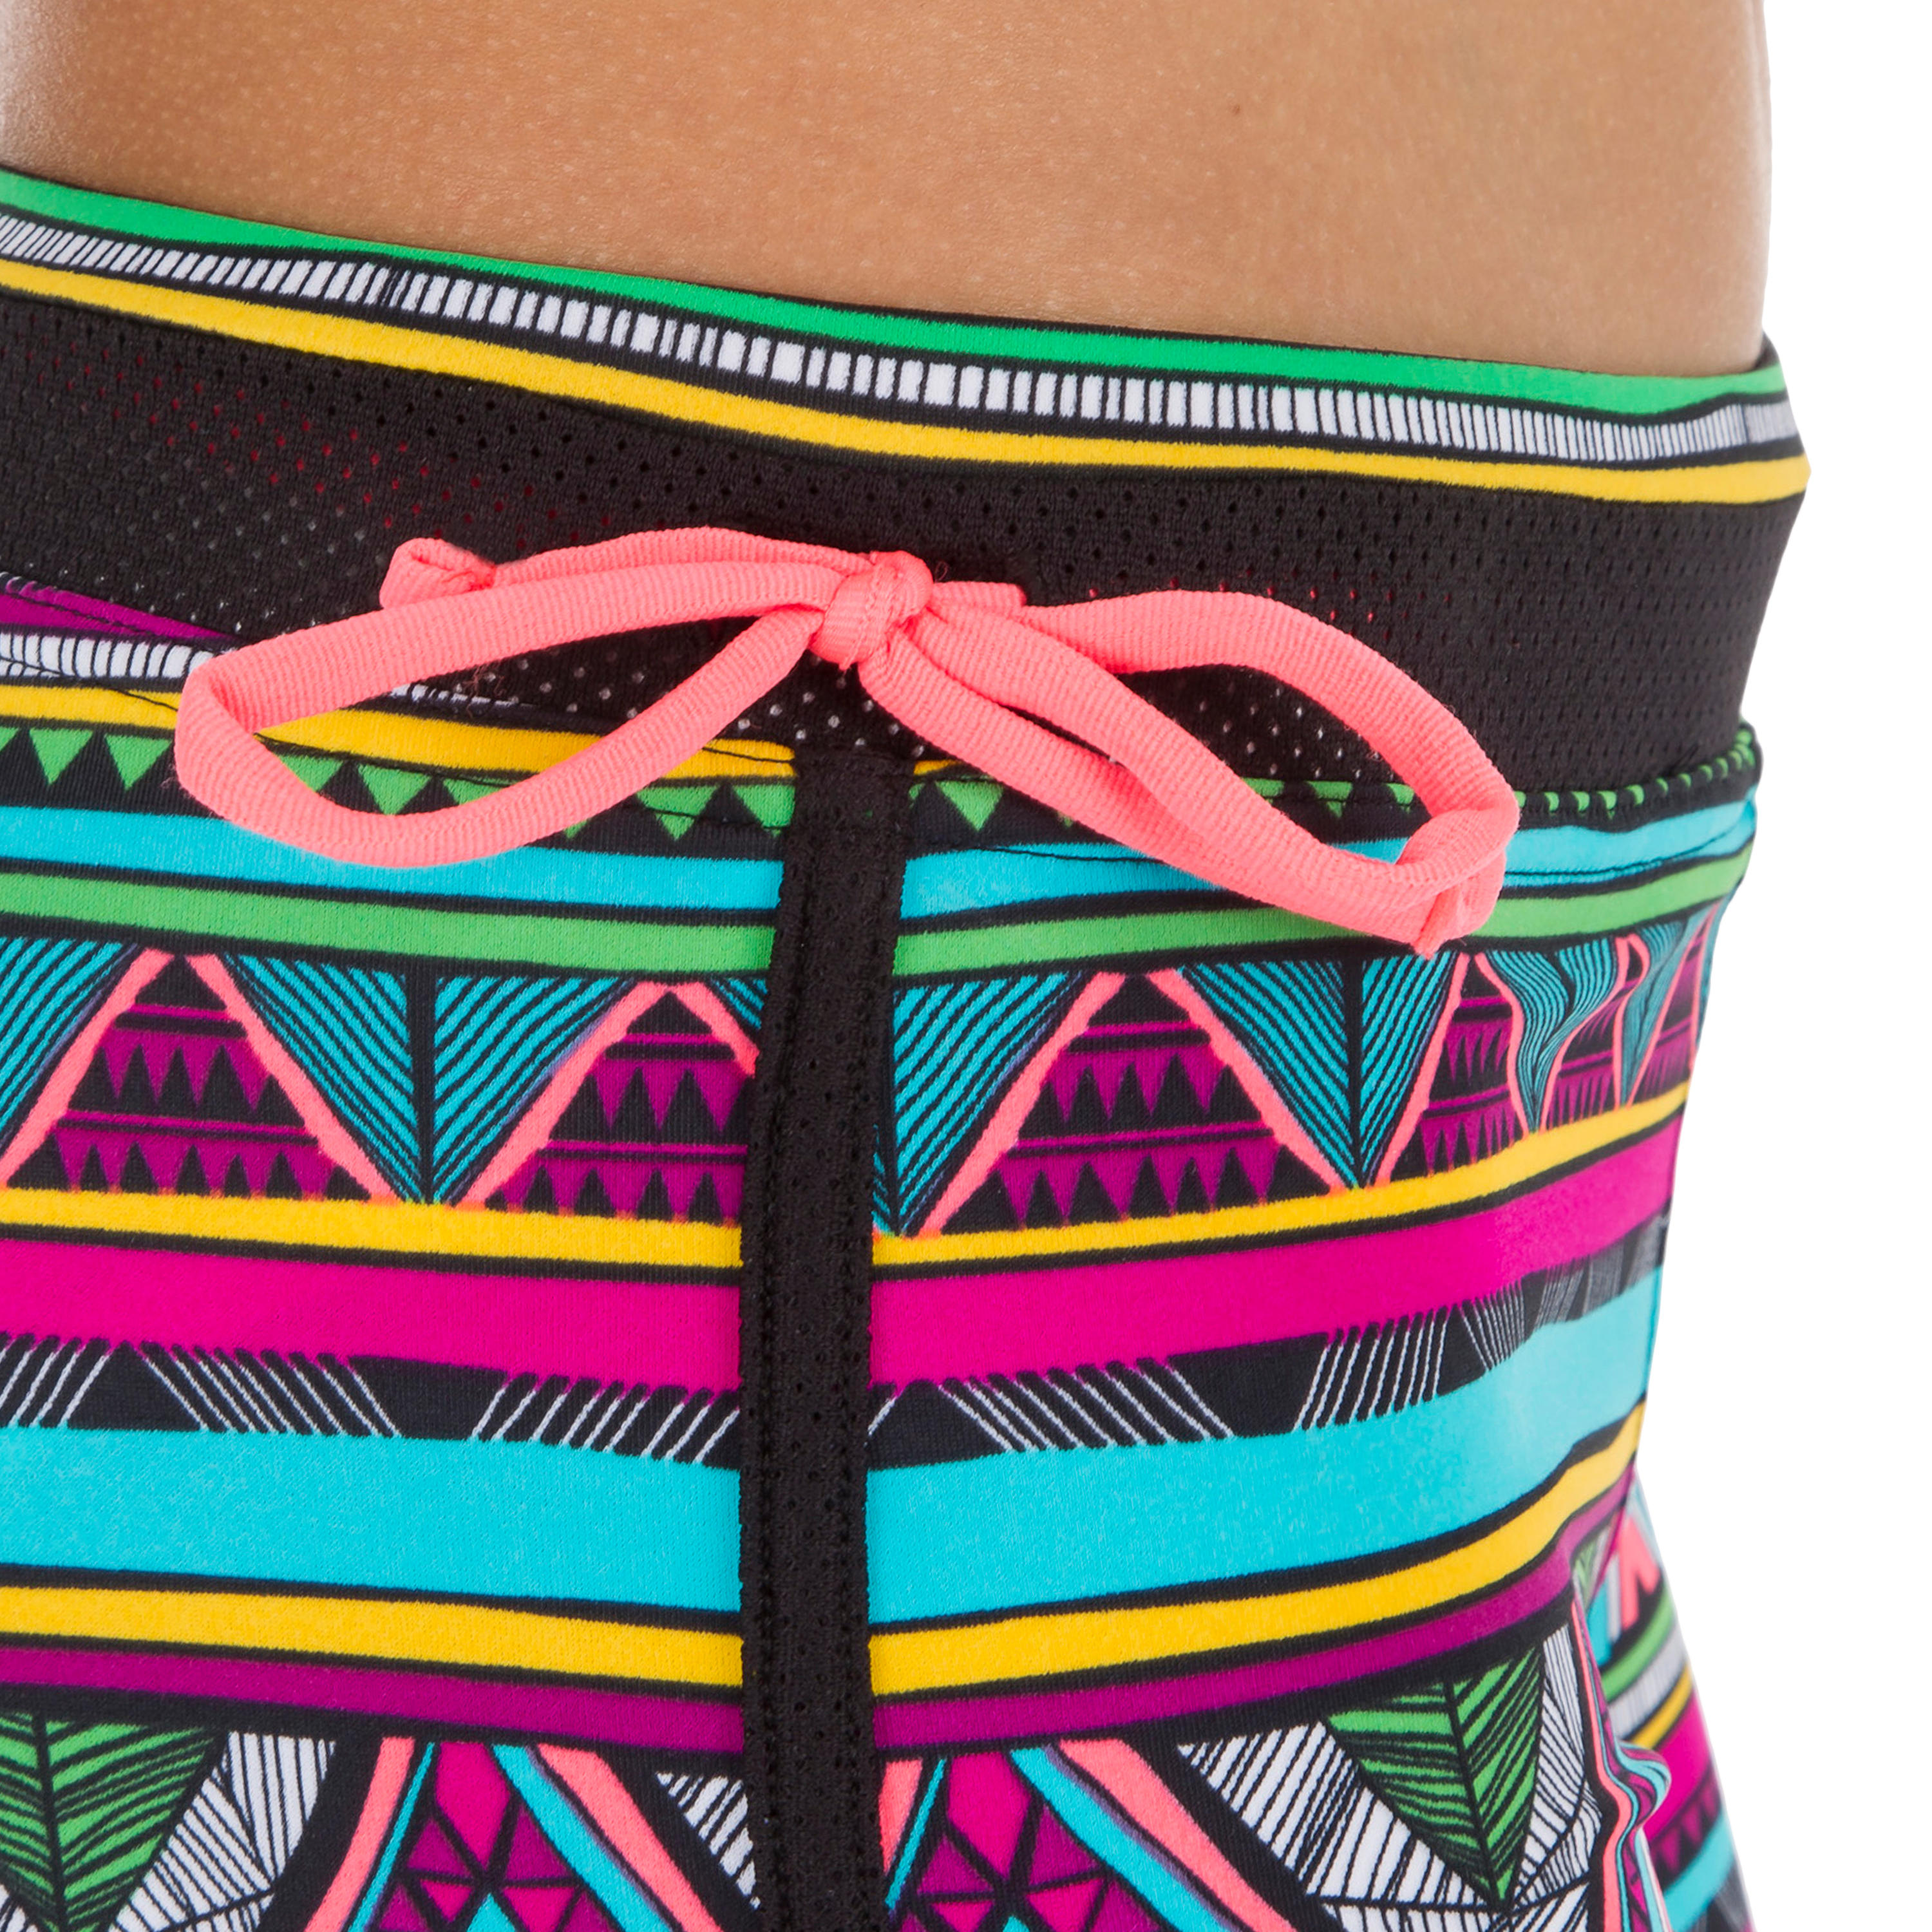 Mila Girls' Surfing Shorty Surf Shorts with Built-in Briefs - Naimi